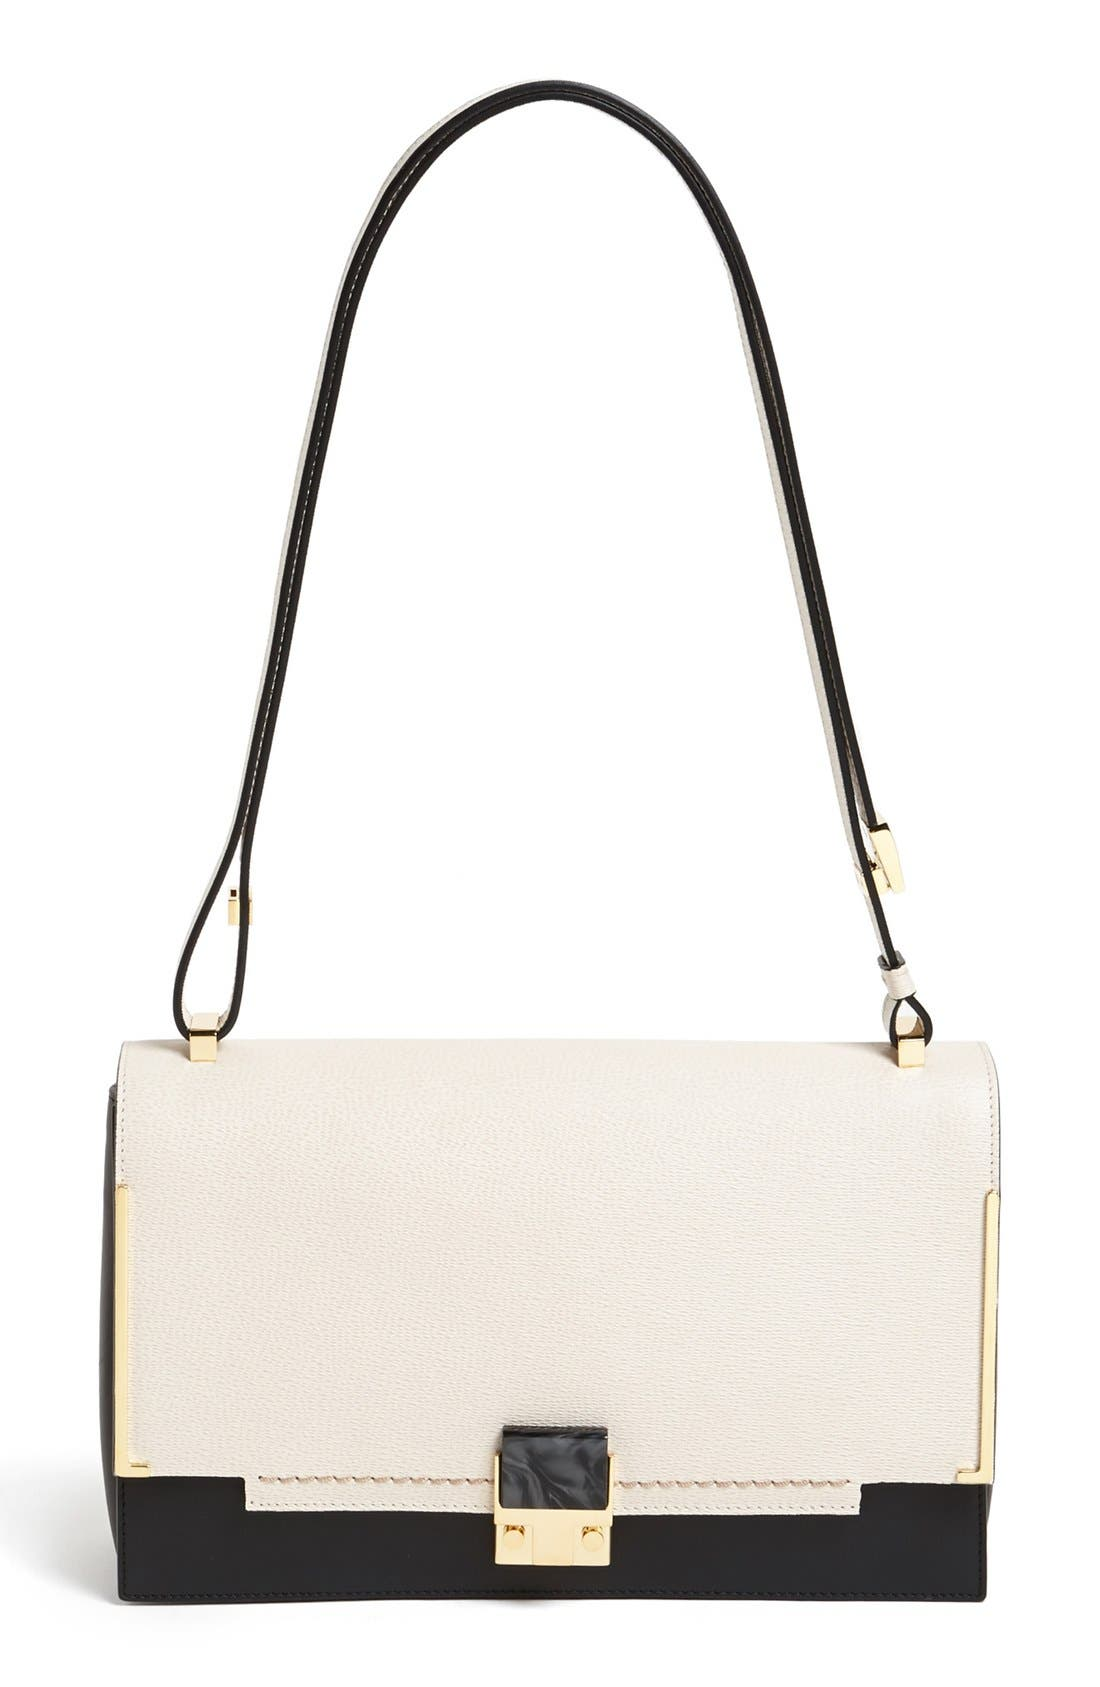 Alternate Image 1 Selected - Lanvin 'Medium Partition' Shoulder Bag